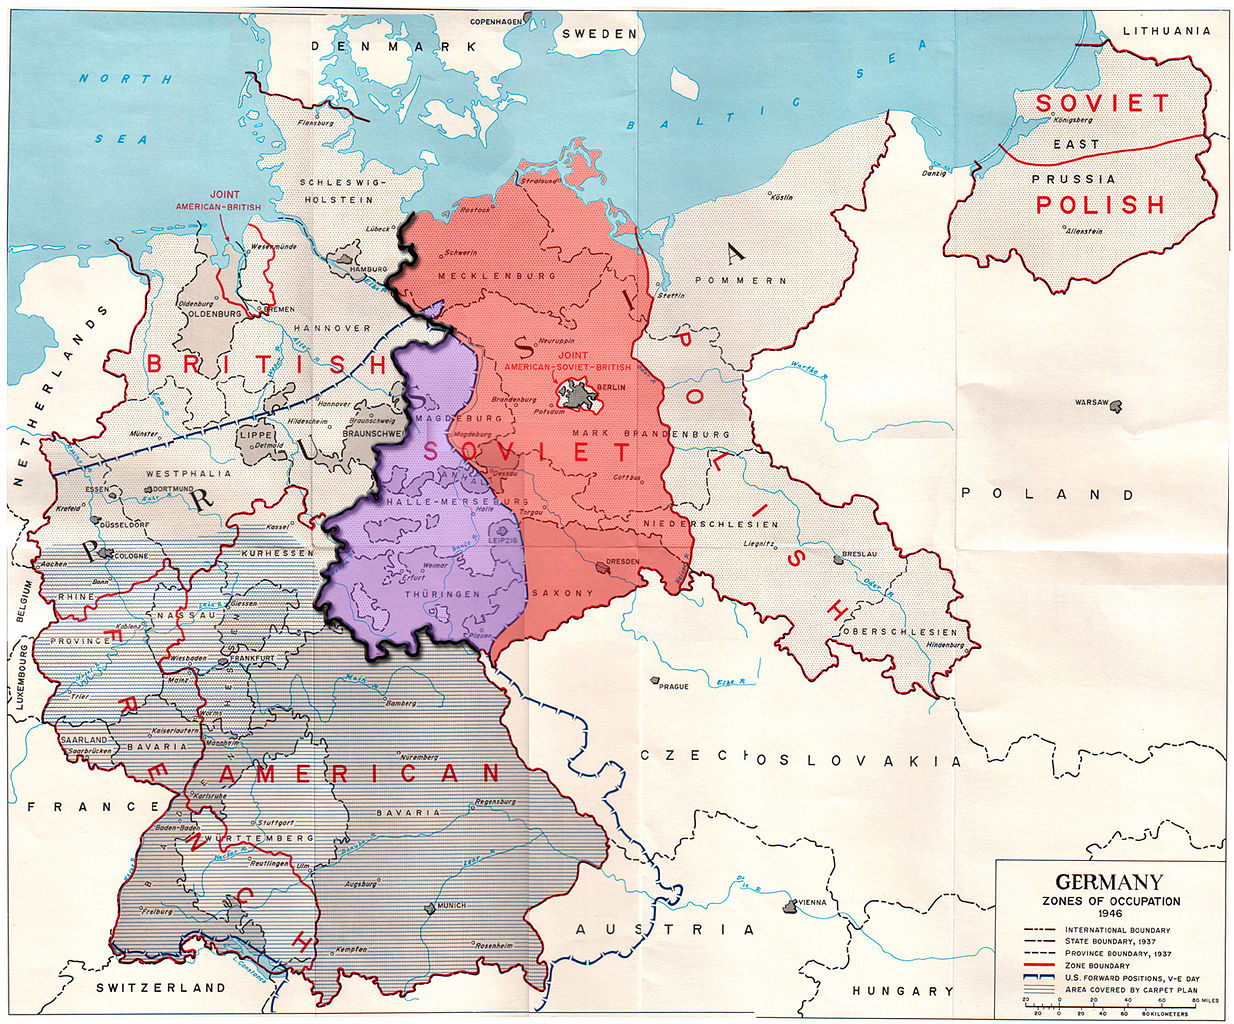 Map of post-war Germany occupation including territories occupied by British, French, and American troops on the western front and the Polish occupied territory on the eastern front. Soviet held territory is in the middle.